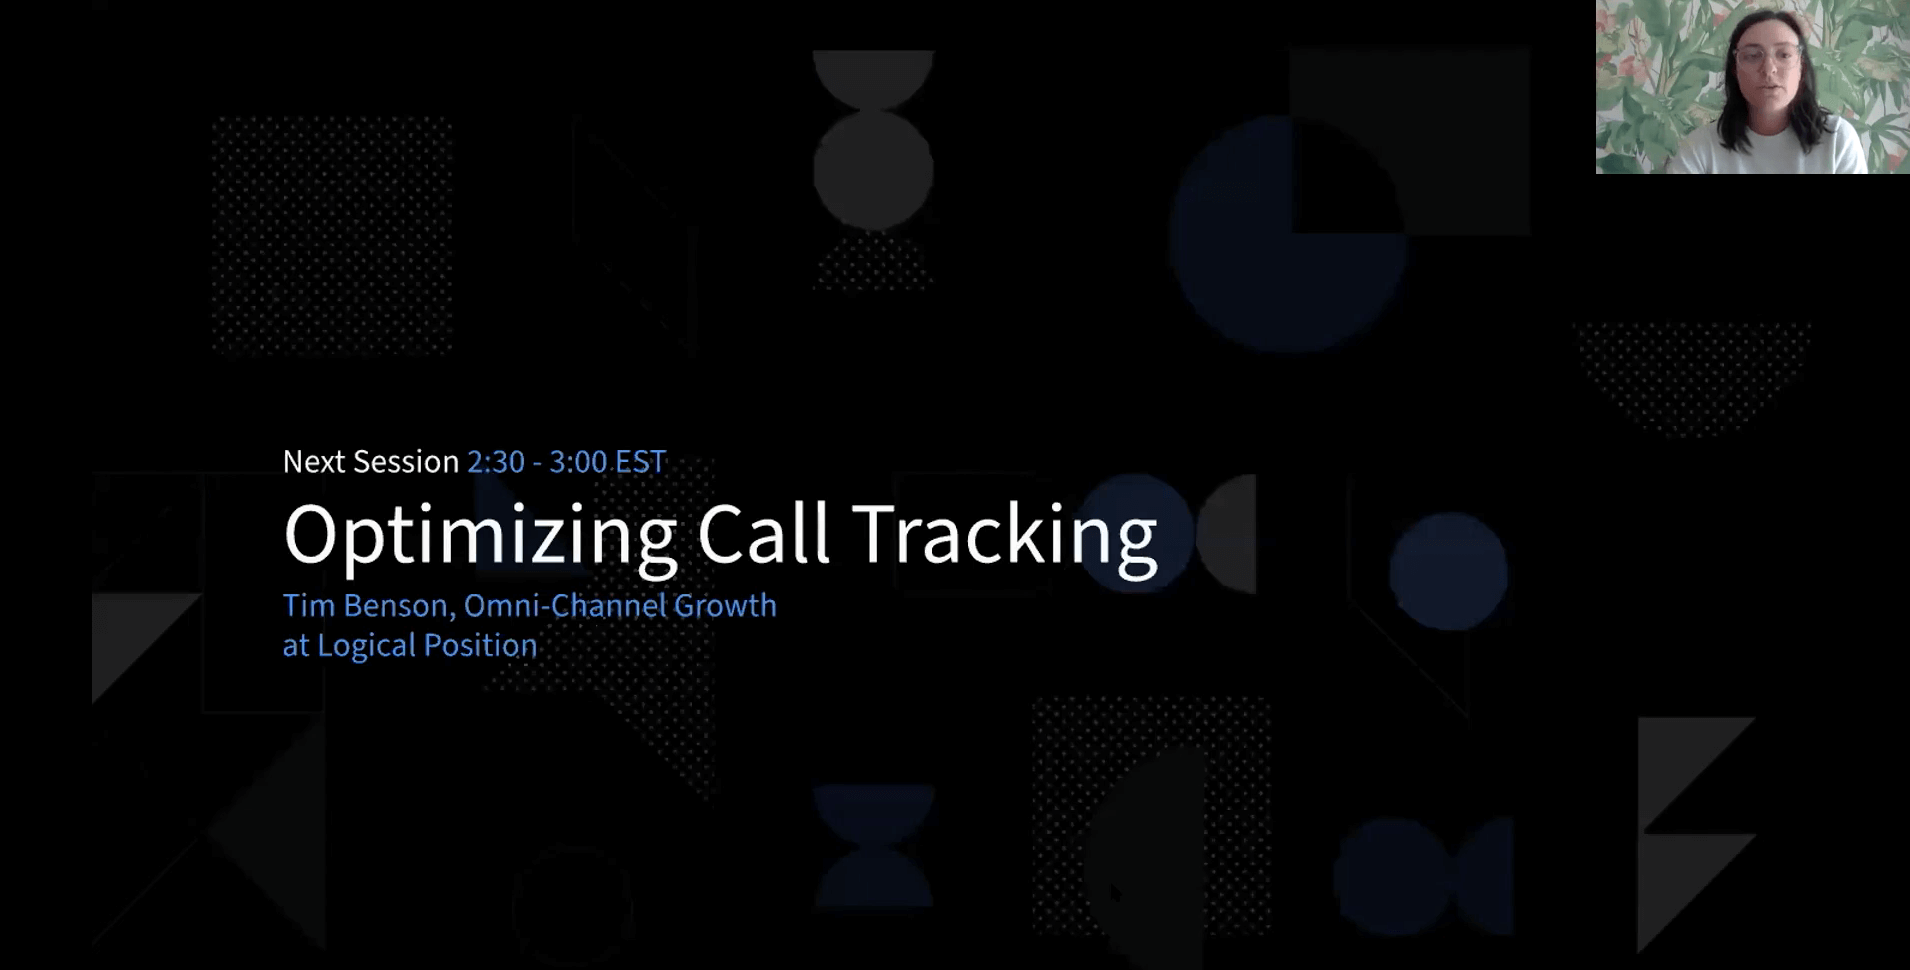 Optimize-Call-Tracking